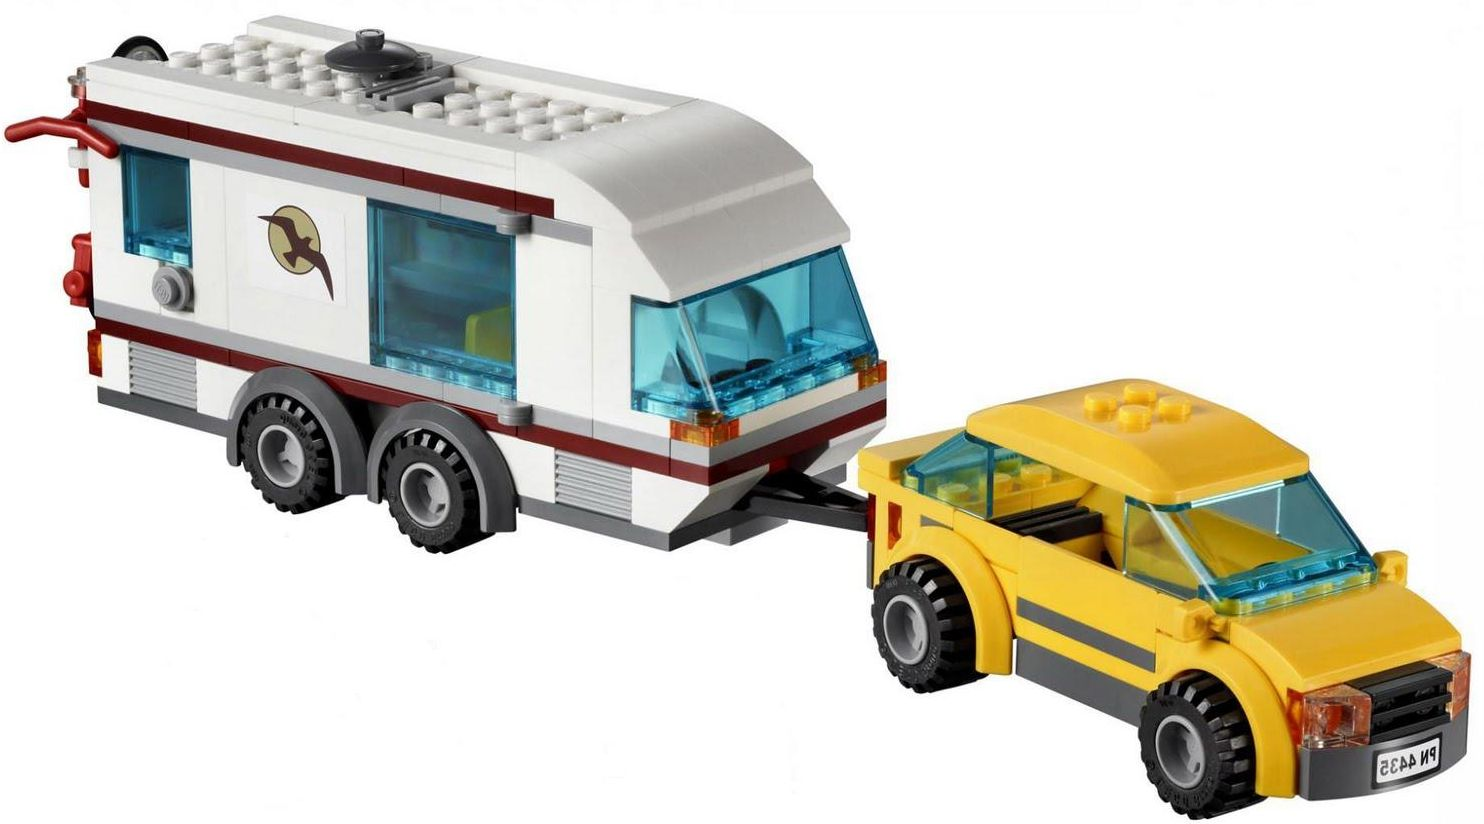 Lego4435 car and Camper  Lego City 4435 – Car and Camper